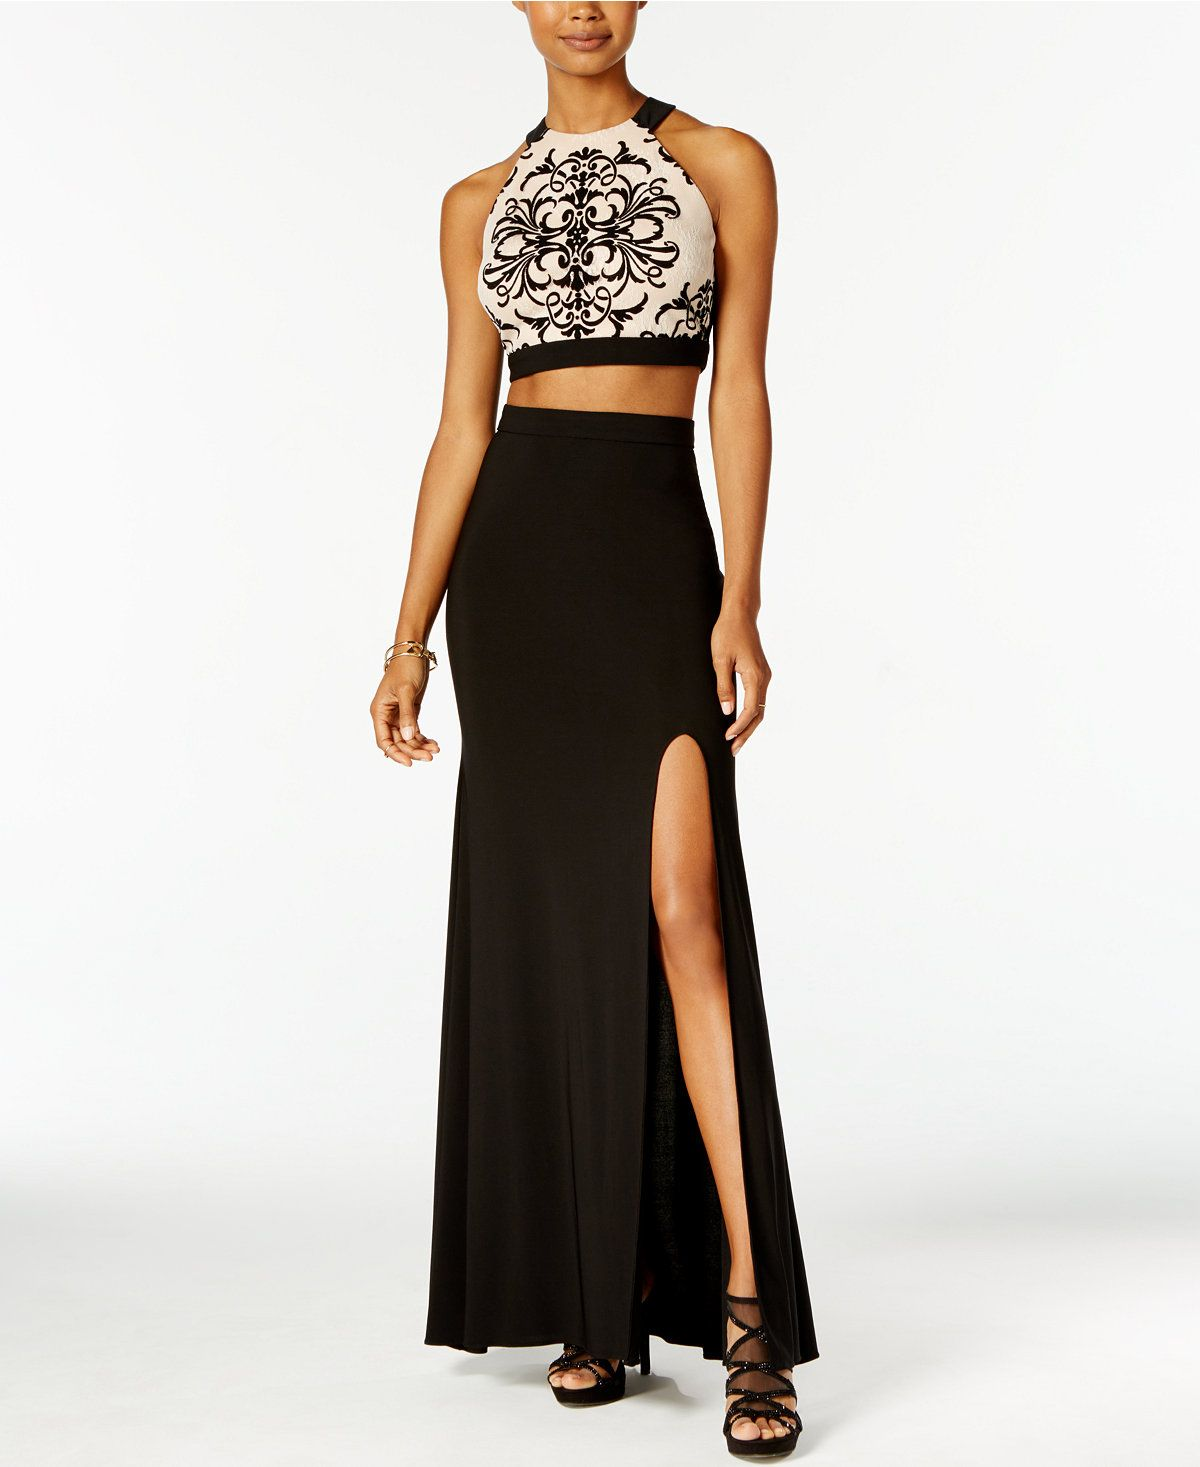 Dress Prom trends exclusive photo